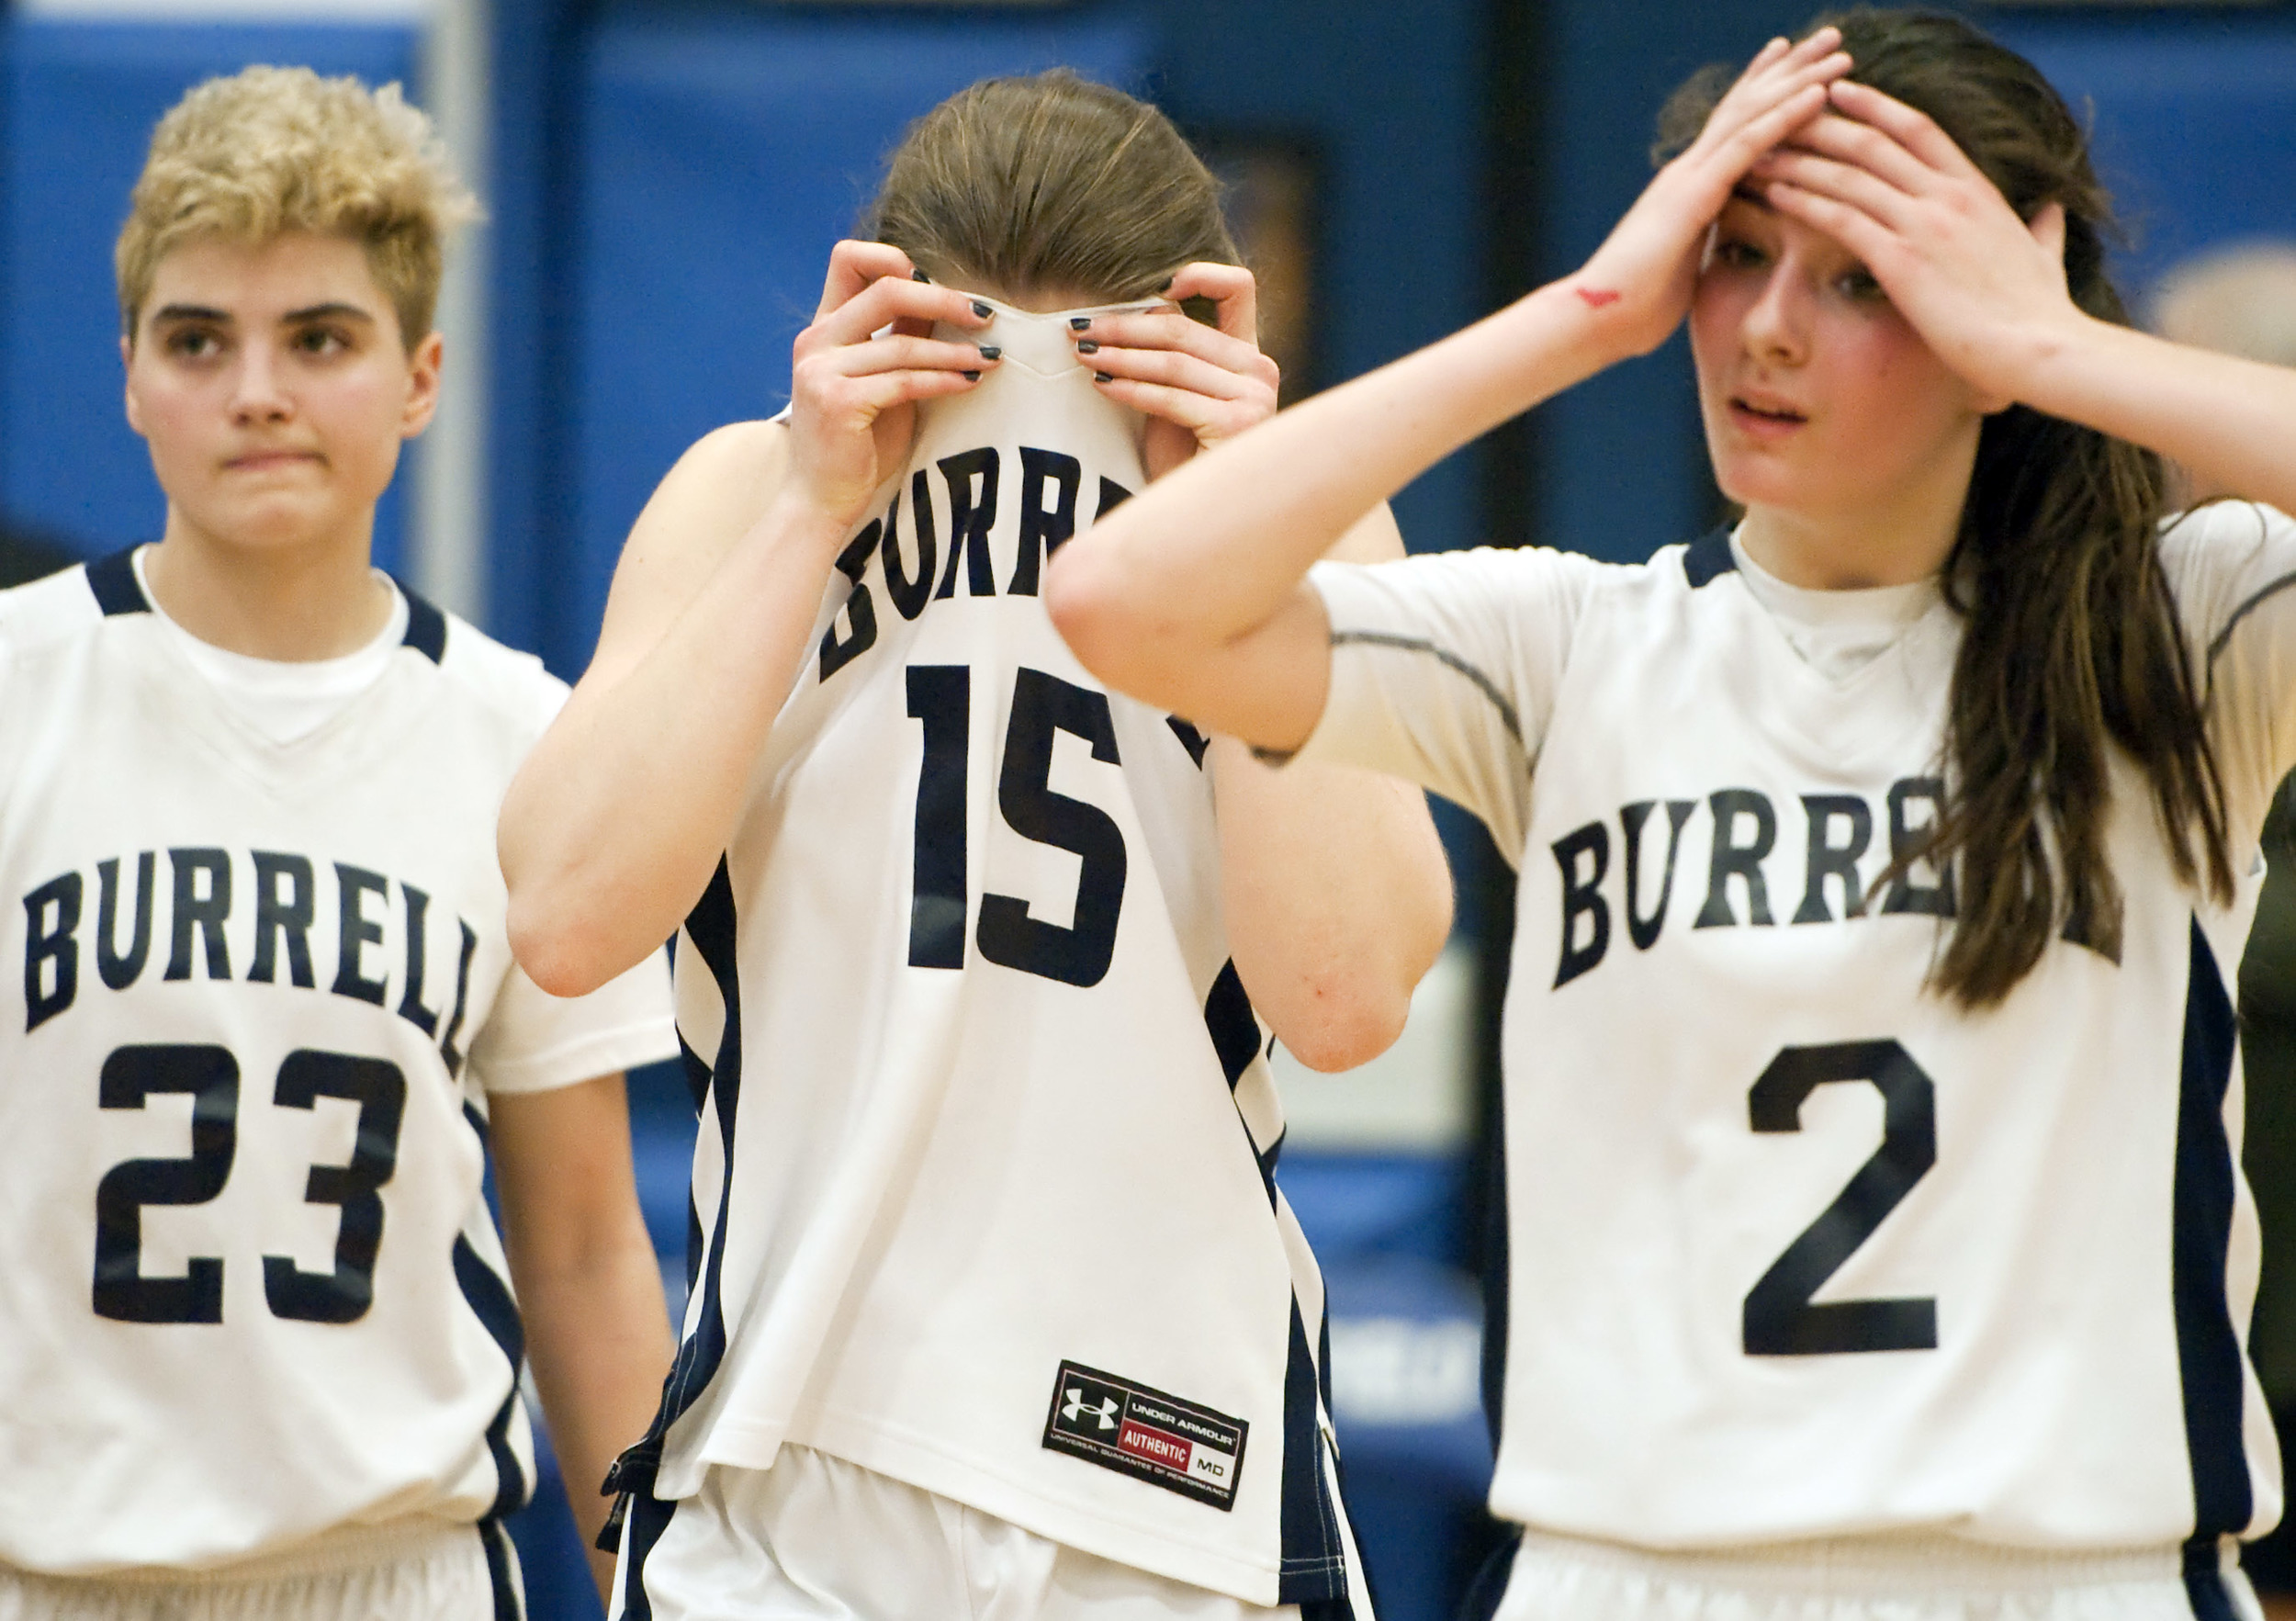 Burrell's Nicole Kristof (15) reacts with Burrell's Eliza Oswalt (2) and Burrell's Bailie Taylor (23) after their loss to North Star during a PIAA Class AA quarterfinal game on Friday, March 11, 2016 at Hempfield Area High School. North Star won 47 - 41.